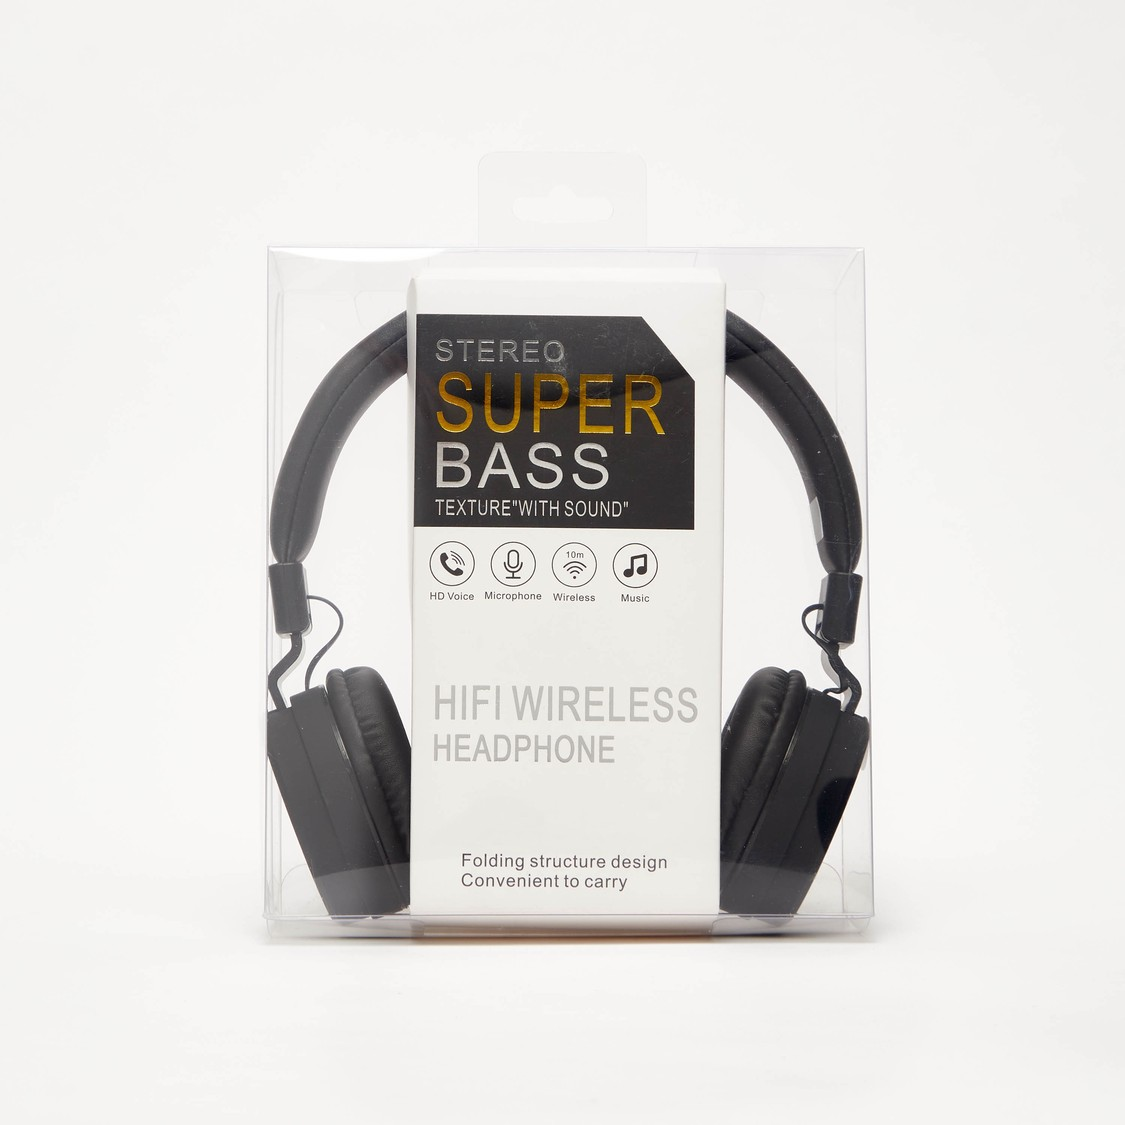 Stereo Super Bass Bluetooth Headphones